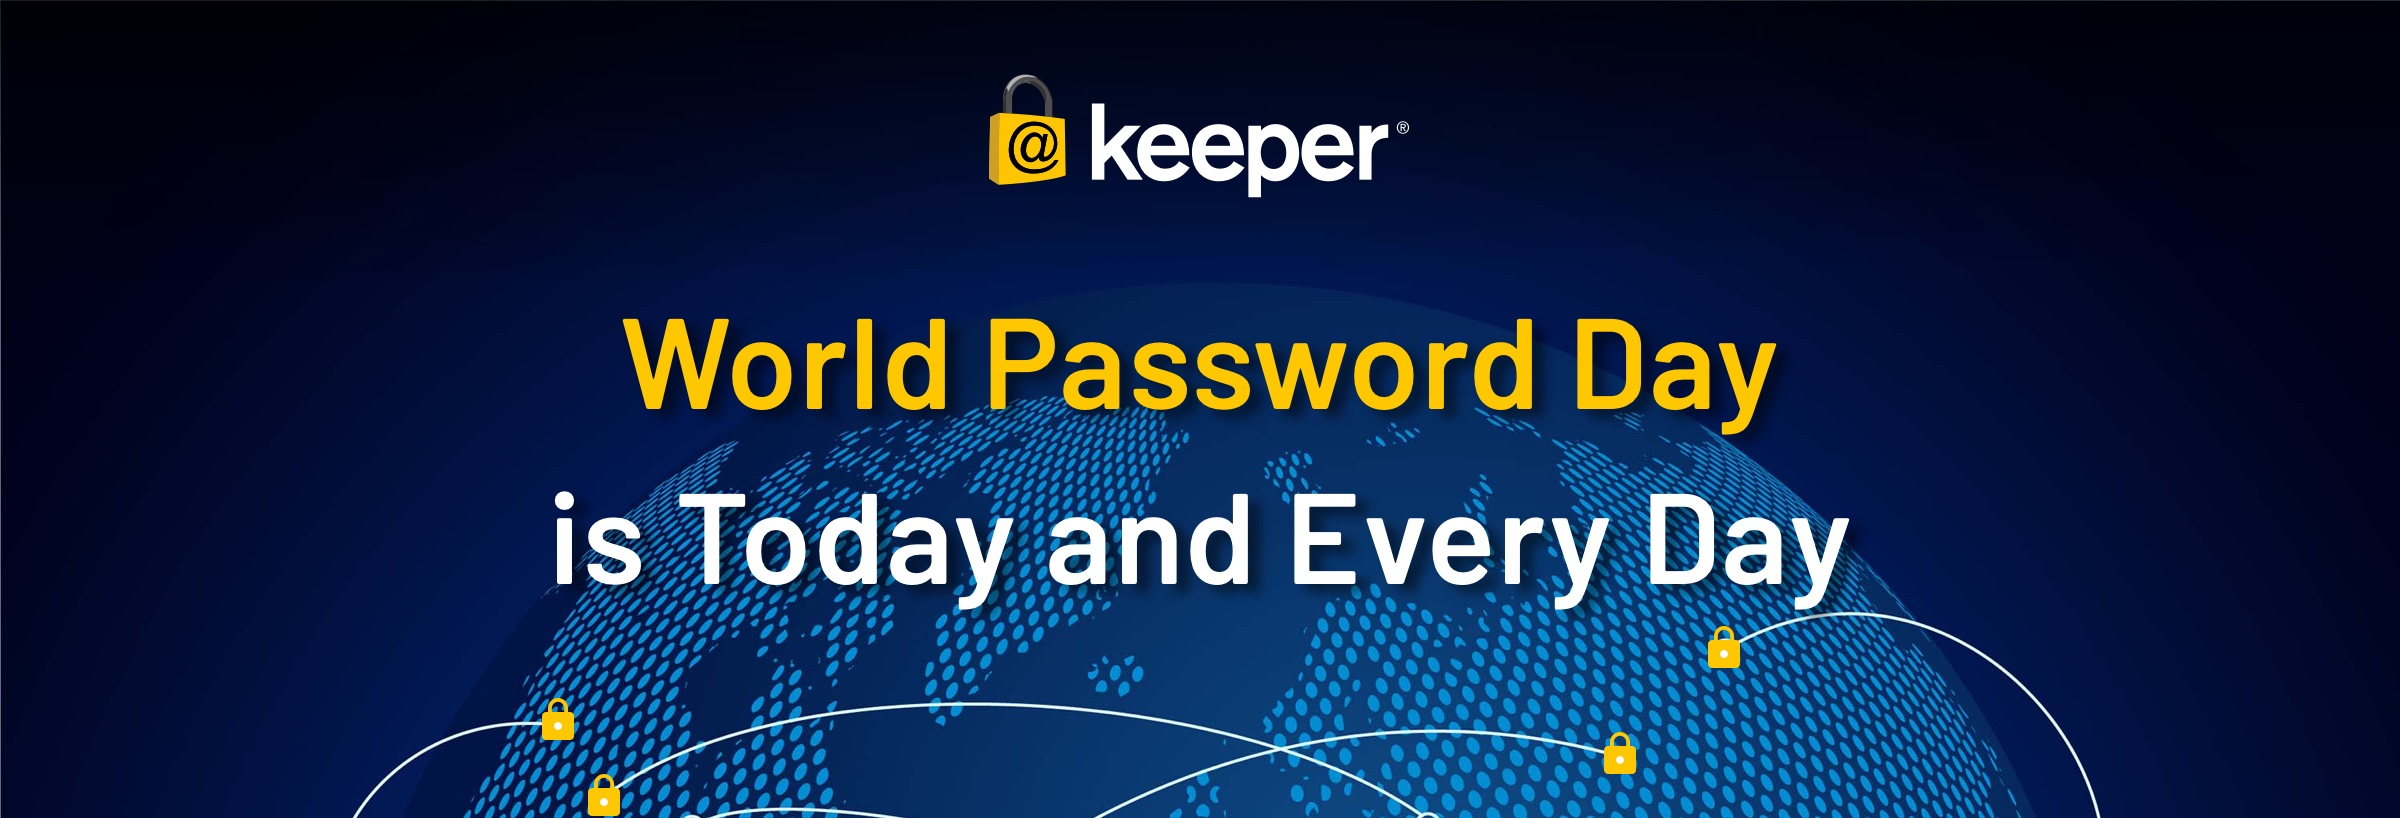 World Password Day is Every Day